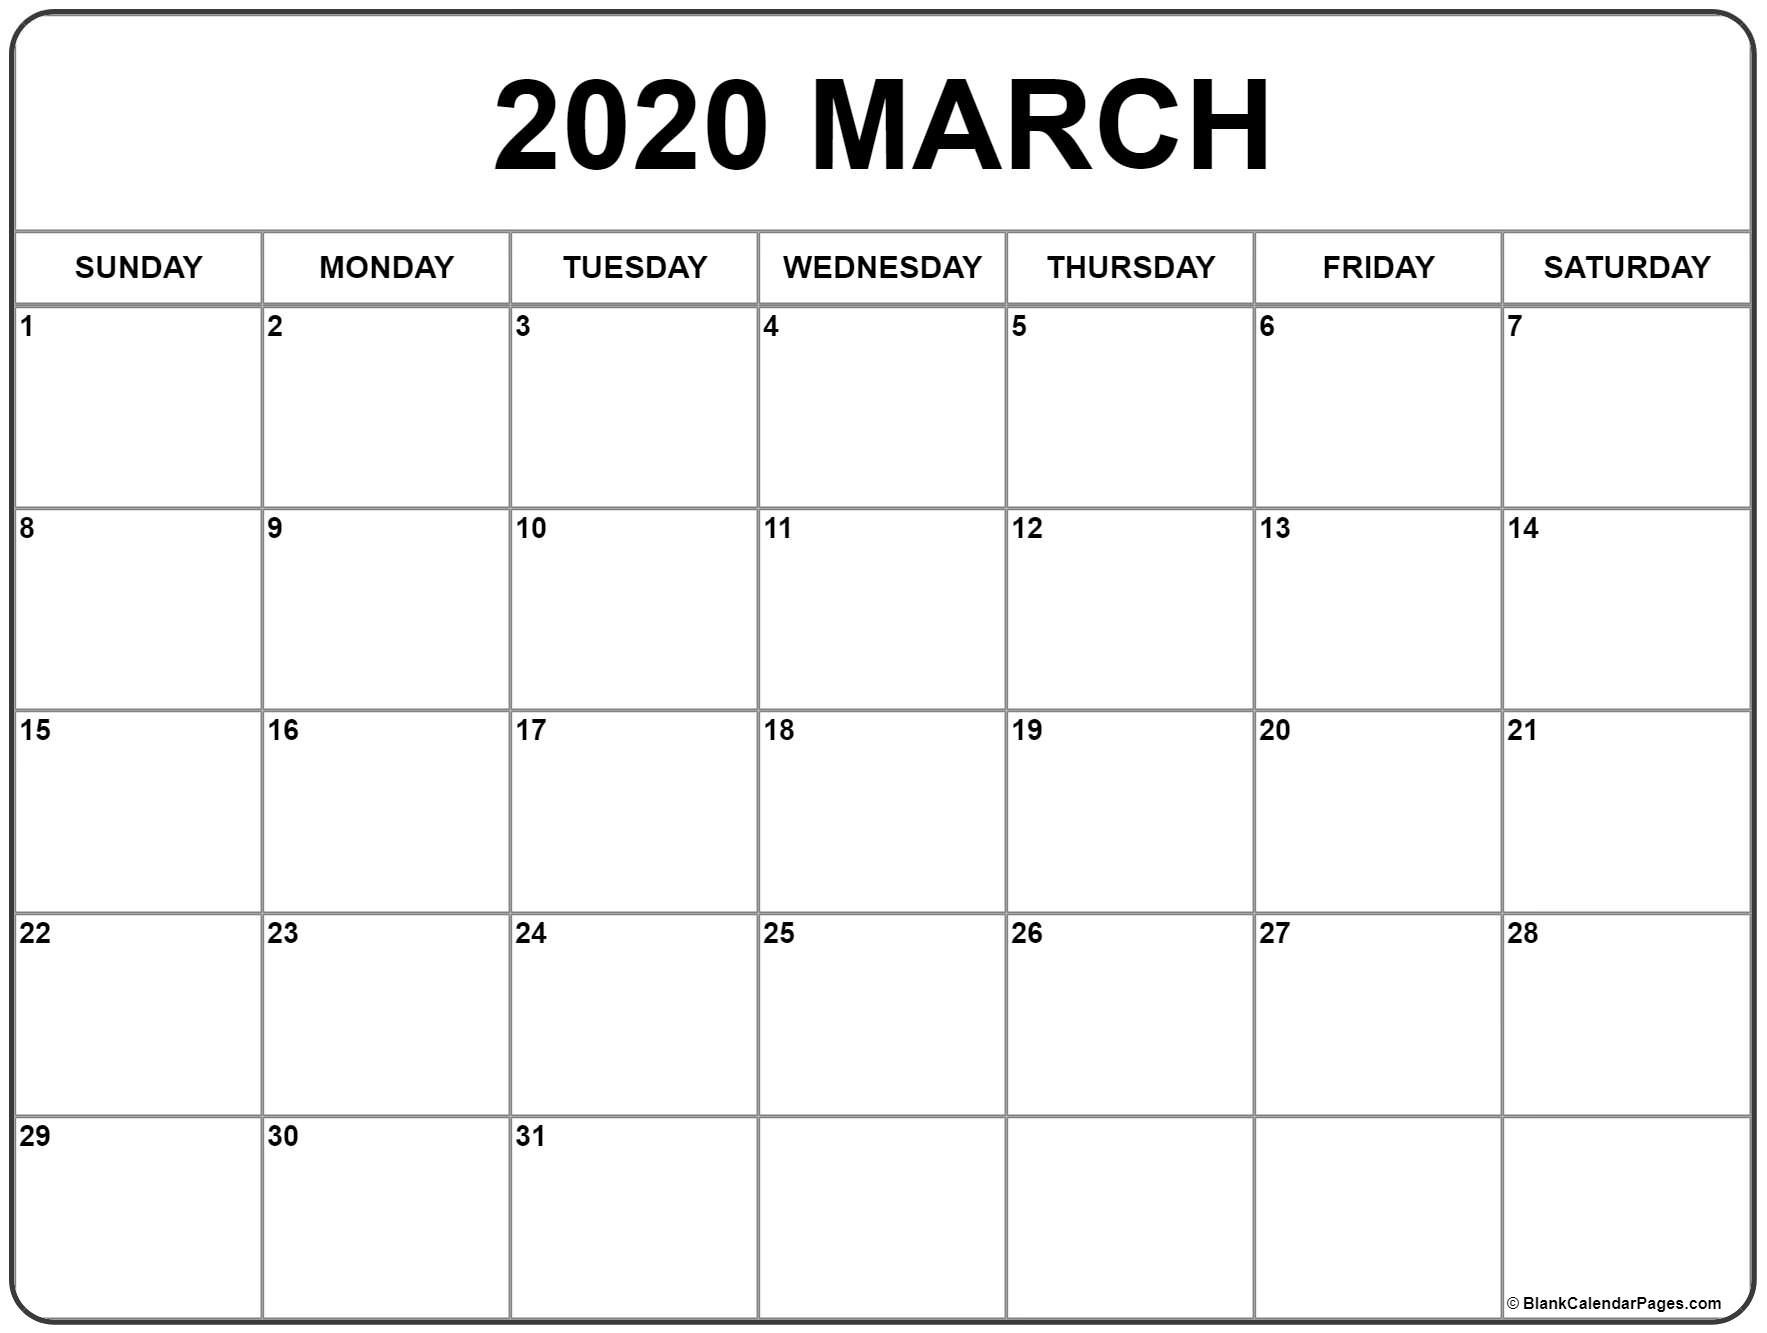 March 2020 Calendar | Free Printable Monthly Calendars-Fre Printable Blank Calander Monthly Pages